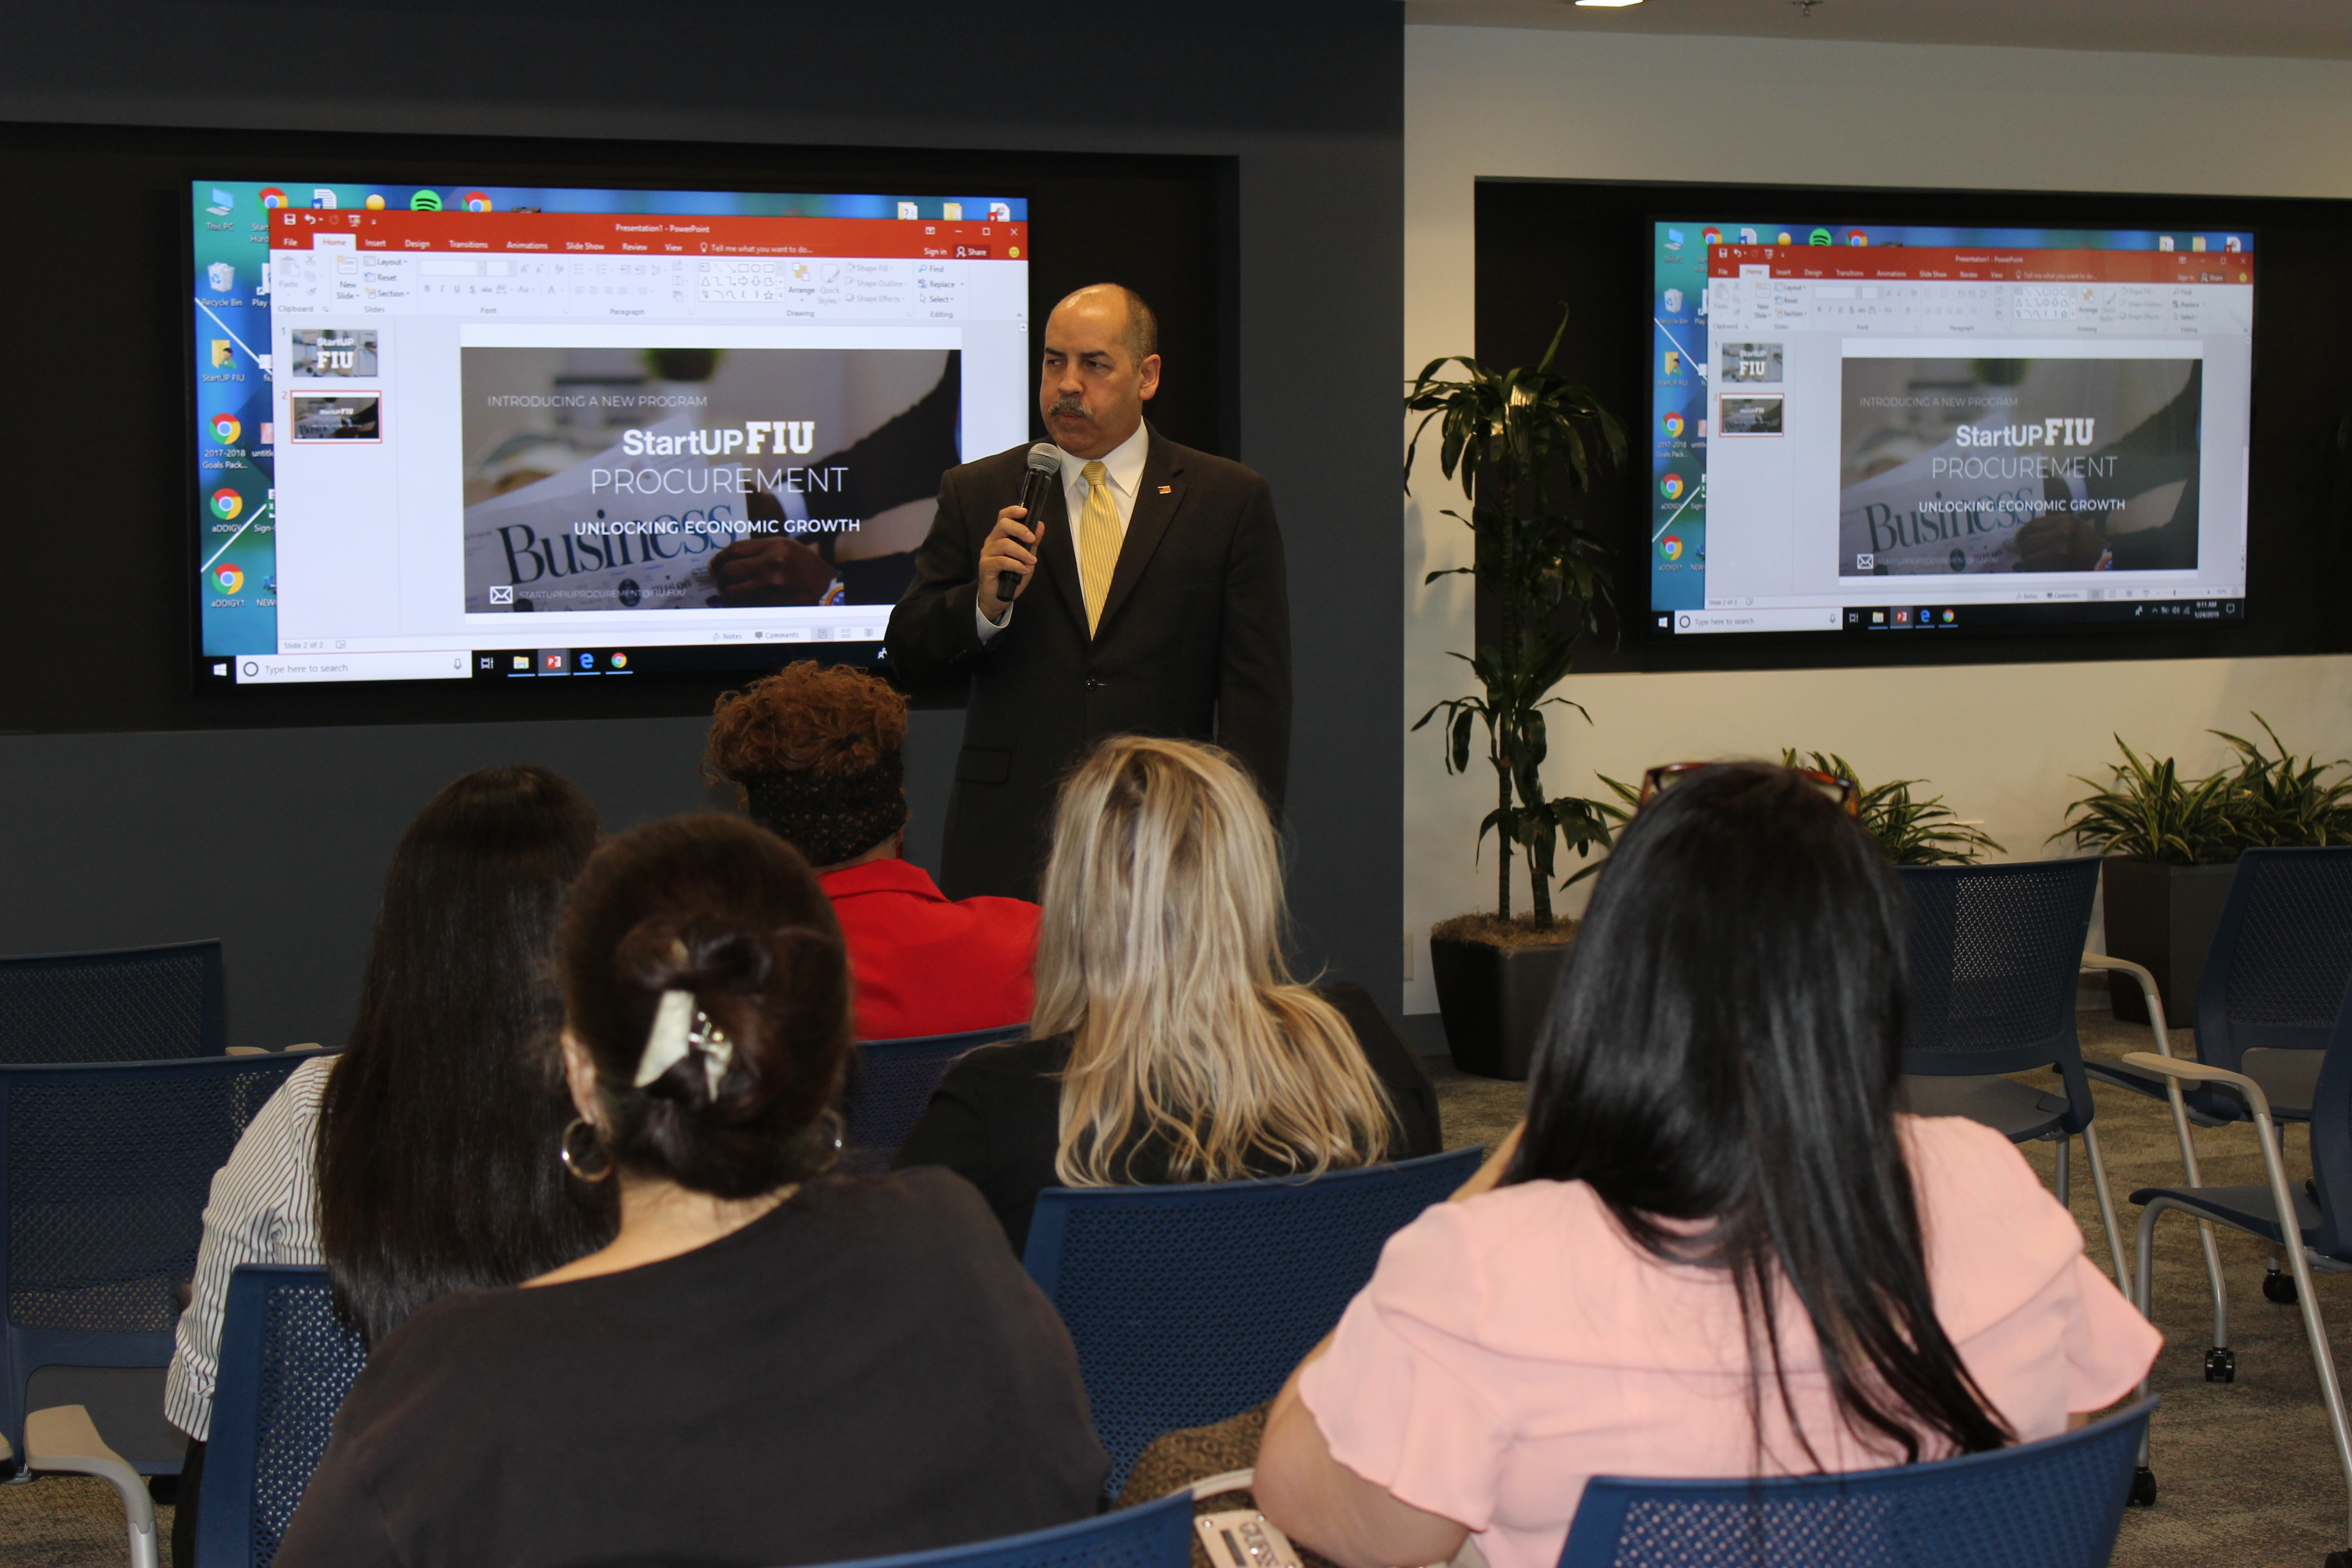 Doral Chamber of Commerce introduces DCC 21st Century Technology event, Manny Sarmiento explaining Startup FIU Doral.